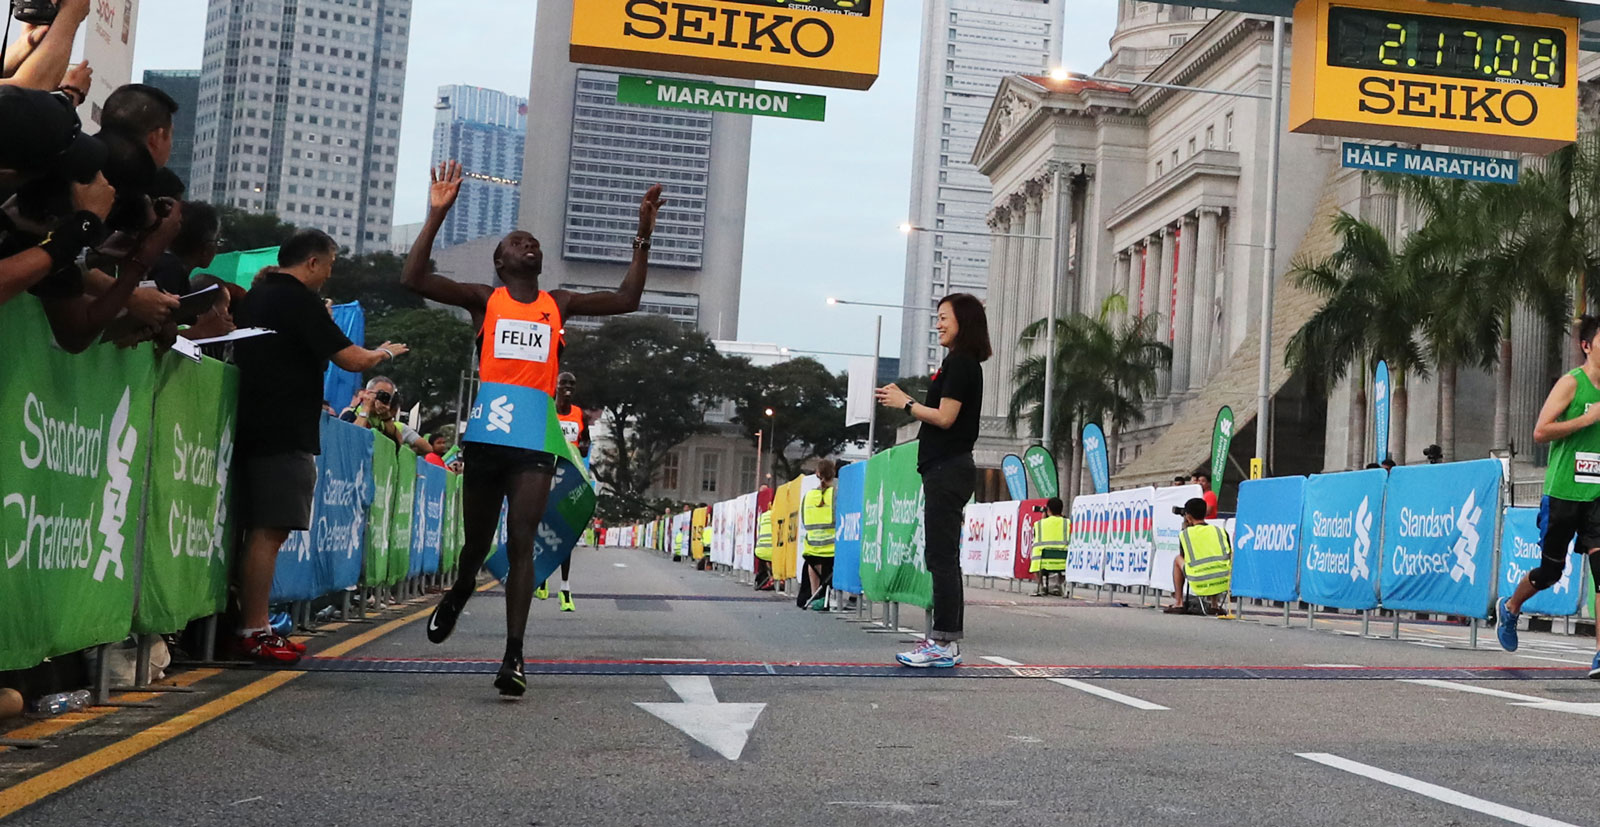 46,000 Runners Flood the Streets of Singapore for SCMS2016